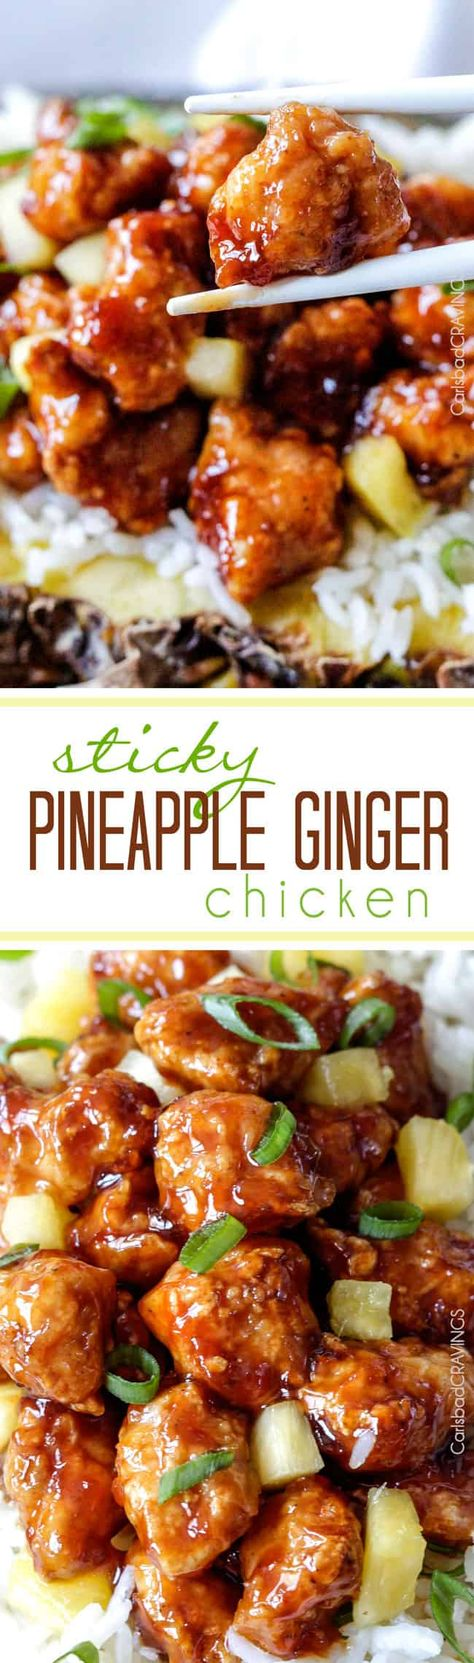 Pineapple Ginger Chicken can be baked or stir fried then smothered in sticky sweetpineapplesauce with a ginger Sriracha kick that is WAY better than takeout.This Pineapple Ginger Chicken recipe might just become your favorite chicken - ever. via @carlsbadcraving